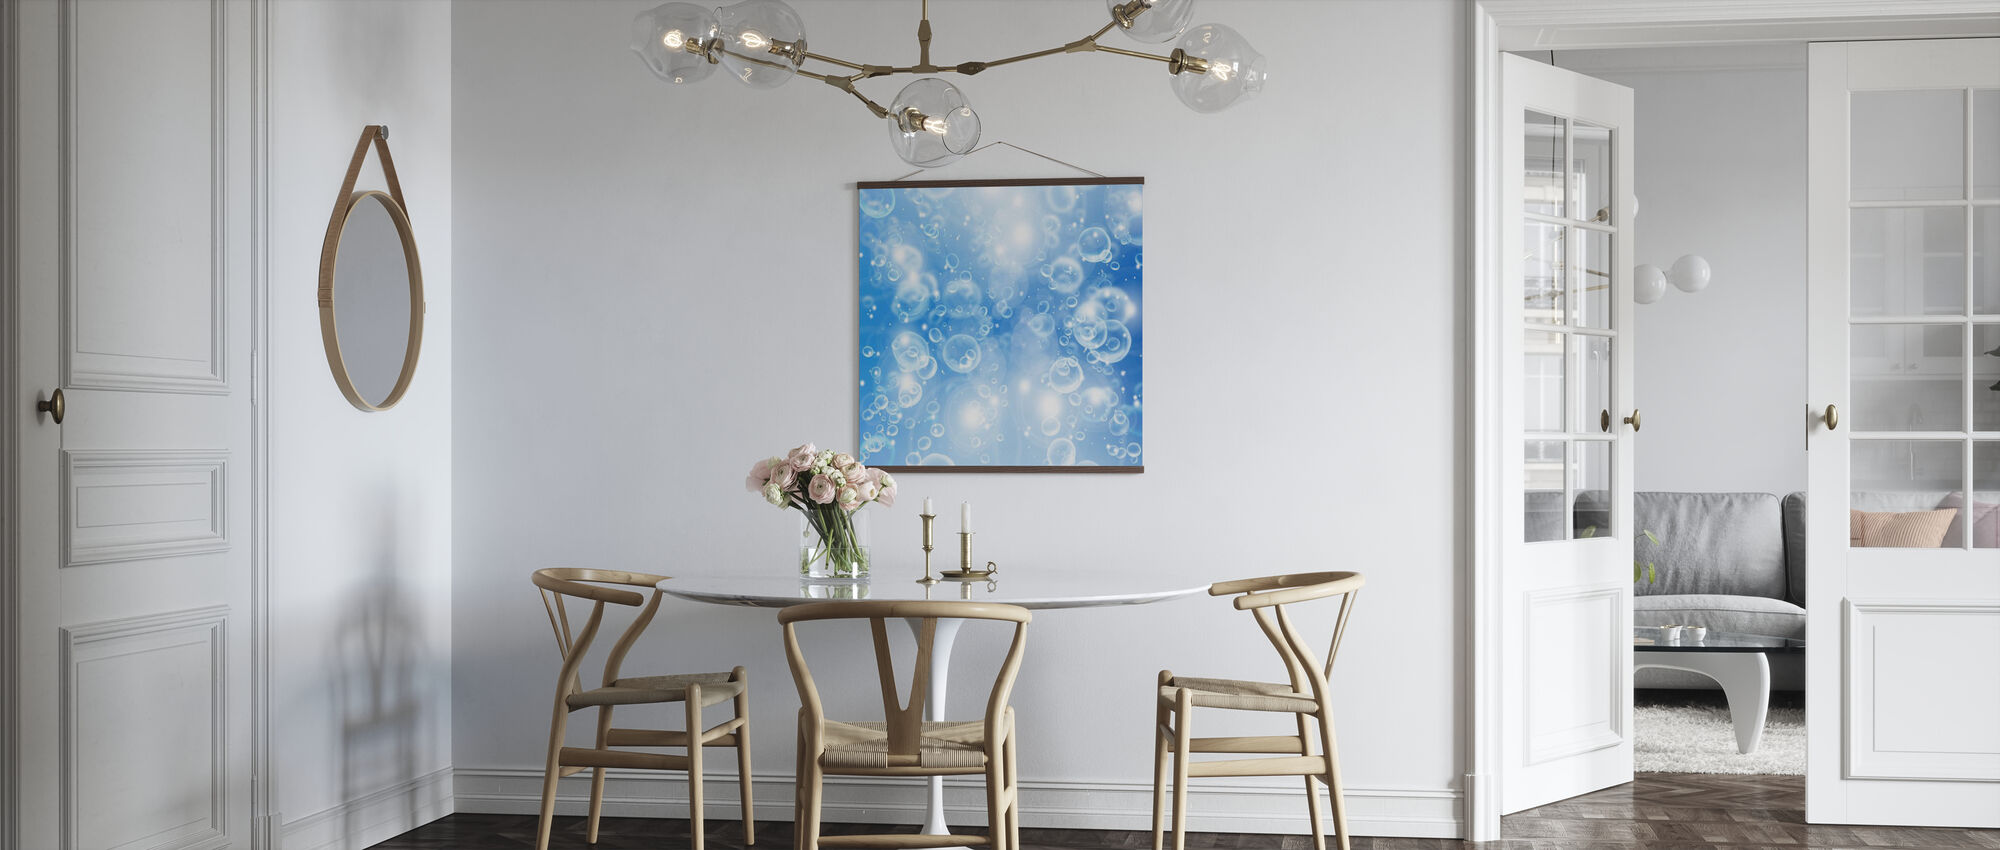 Rising air Bubbles - Poster - Kitchen